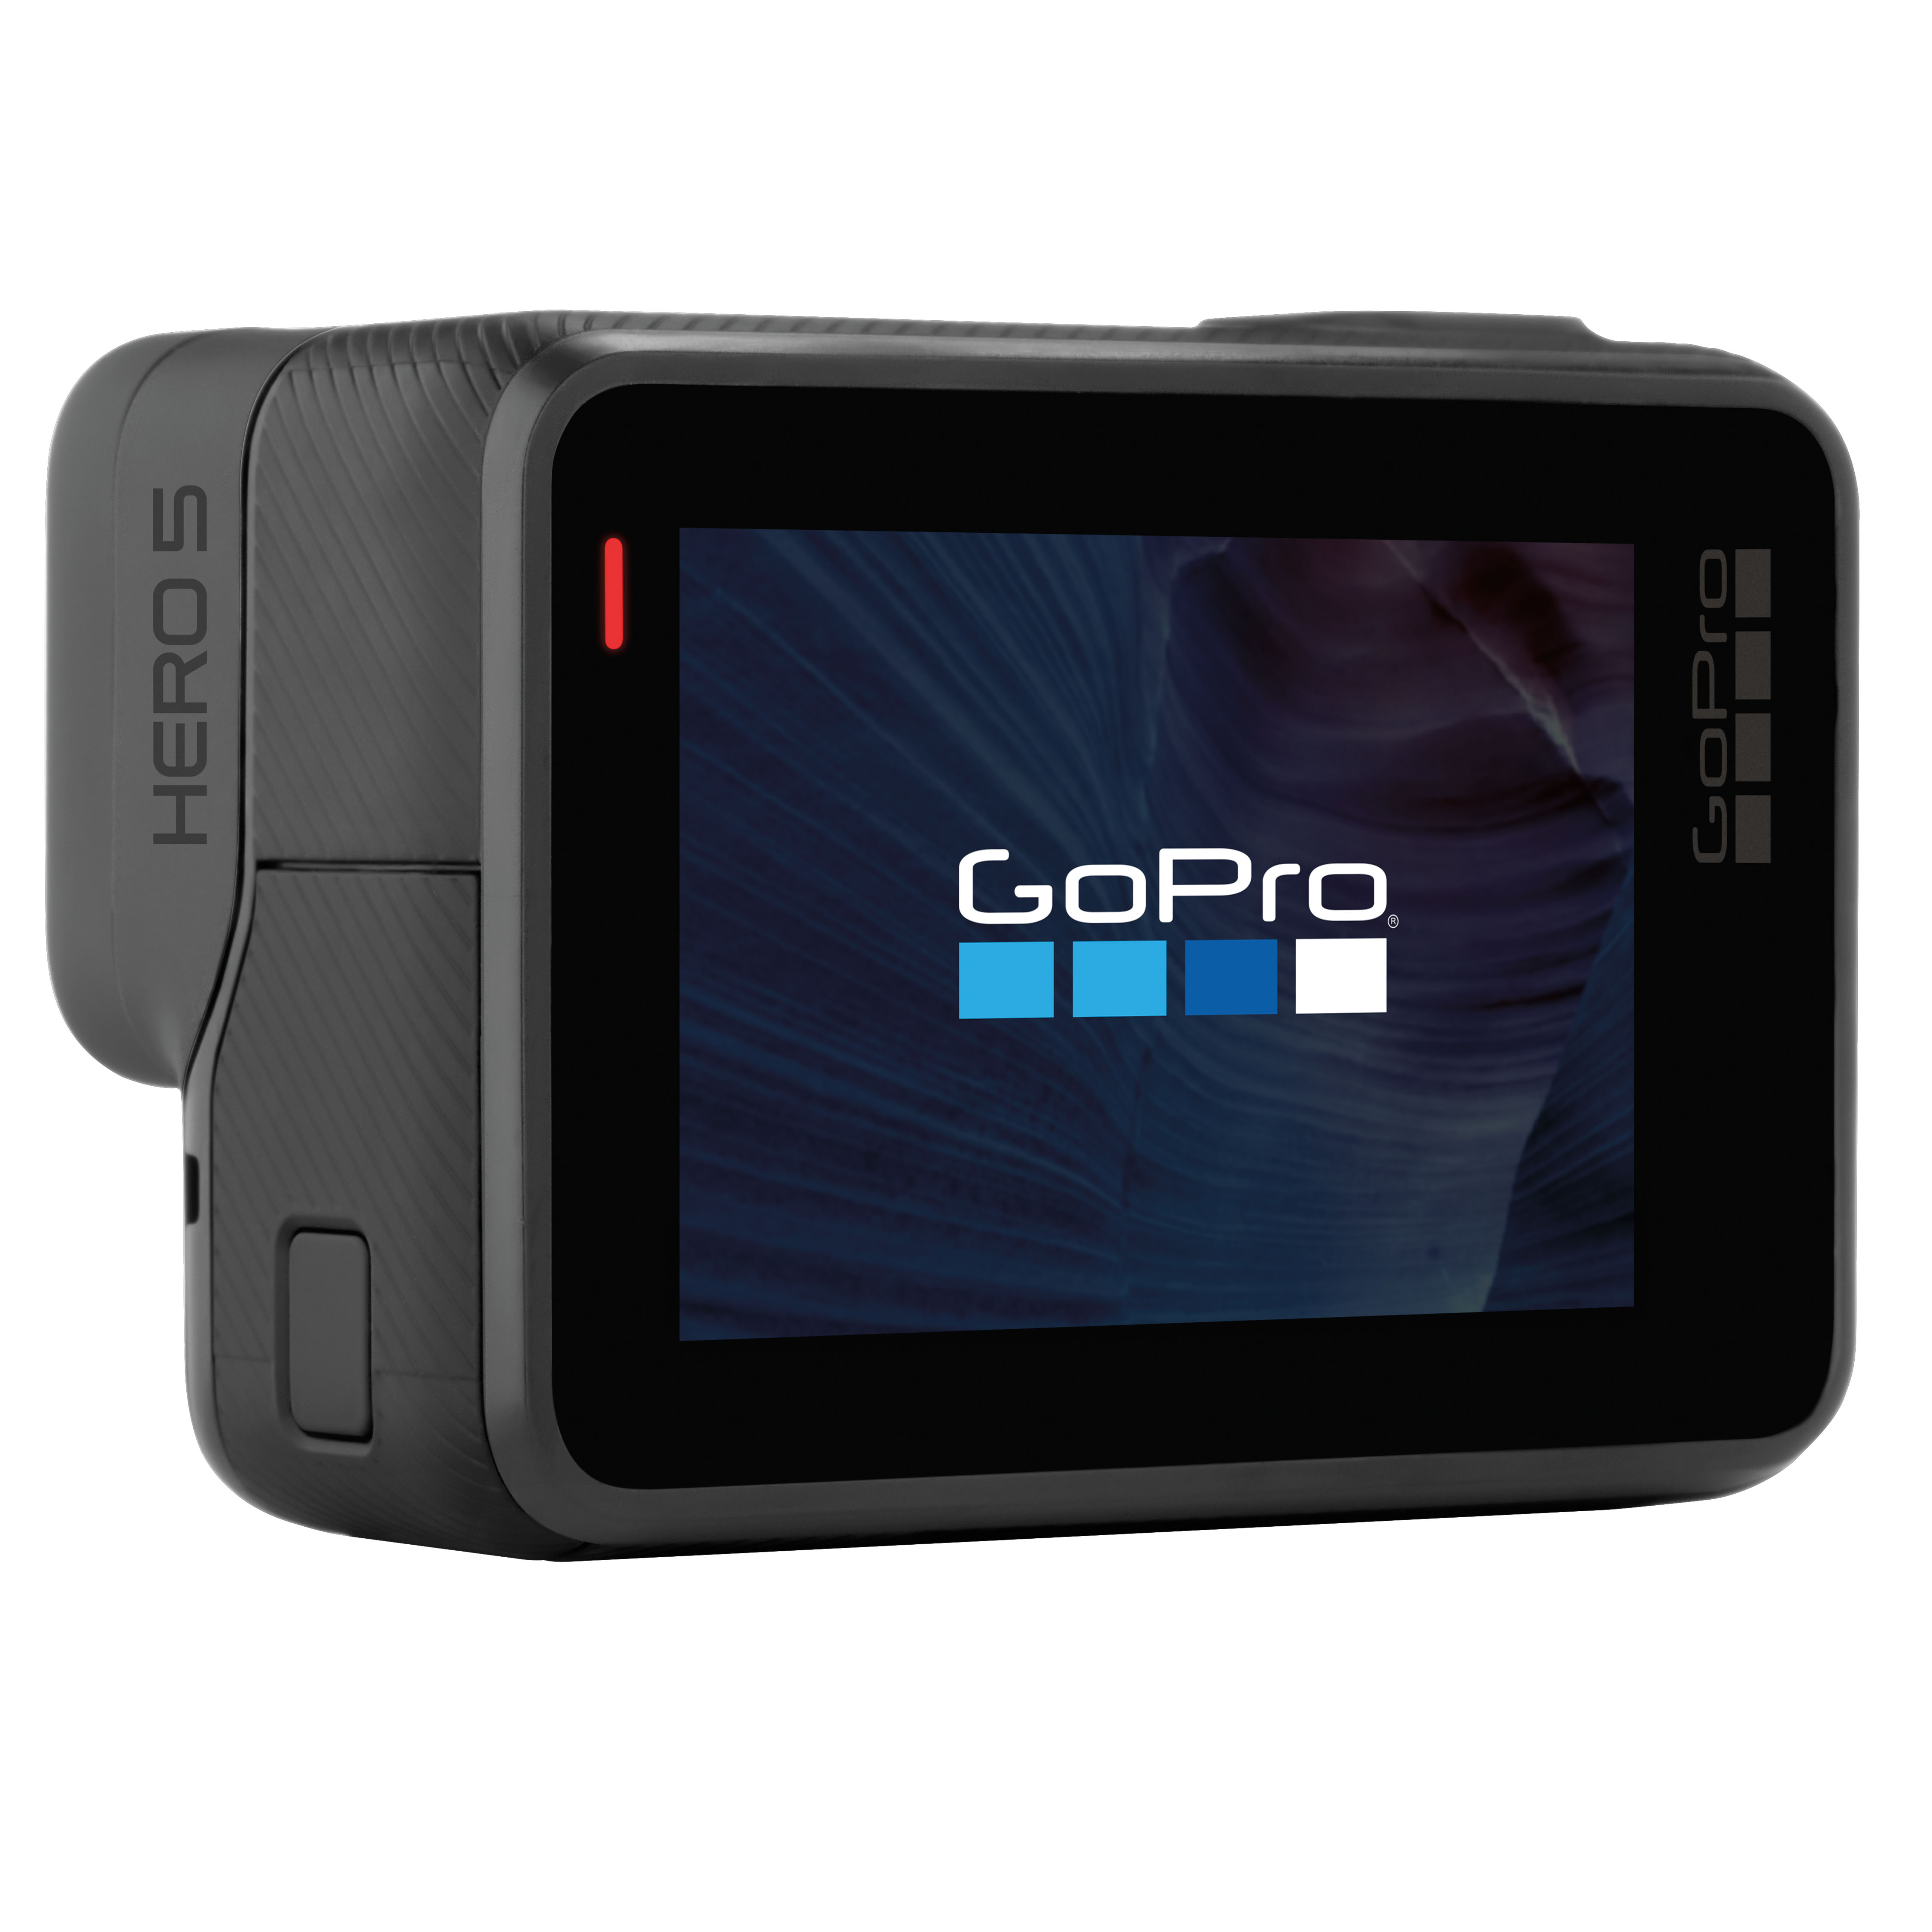 gopro unveils hero5 black and hero 5 session cameras and. Black Bedroom Furniture Sets. Home Design Ideas